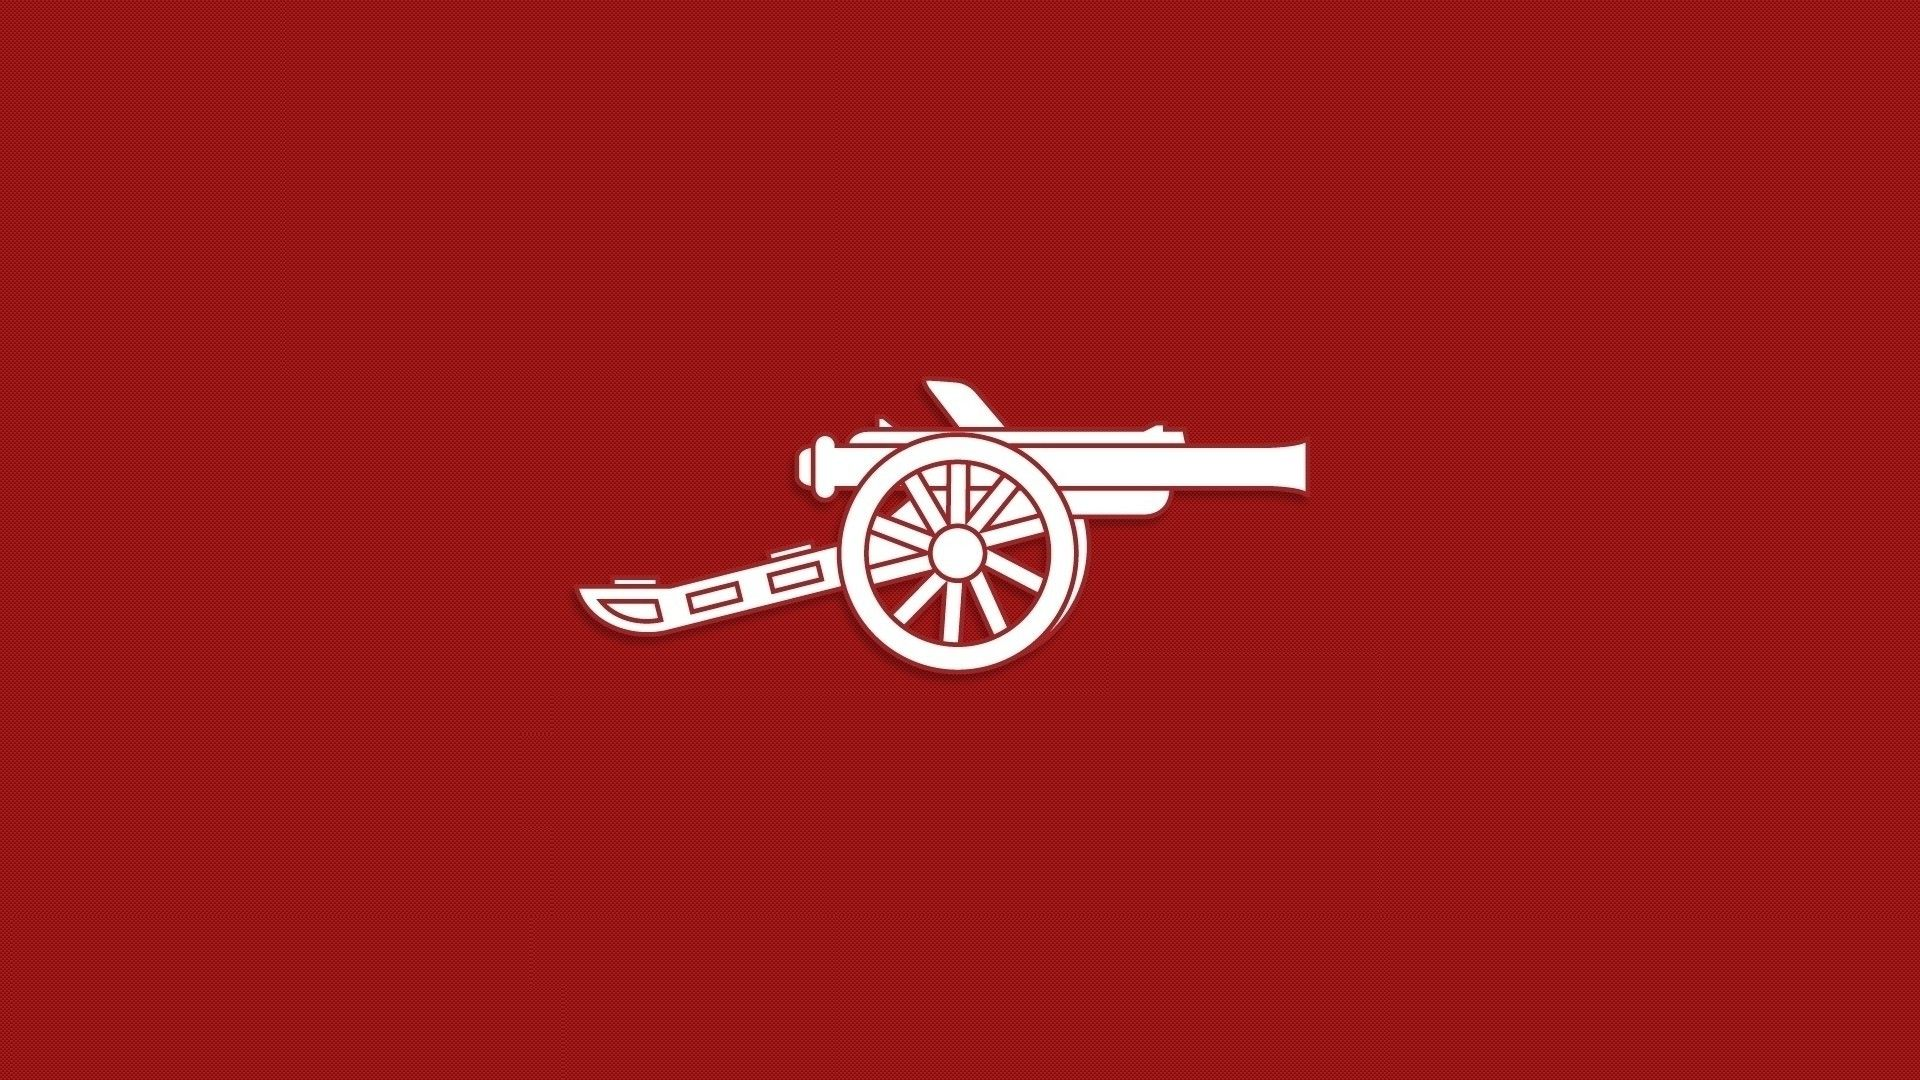 Arsenal Wallpapers   Top Arsenal Backgrounds   WallpaperAccess 1920x1080